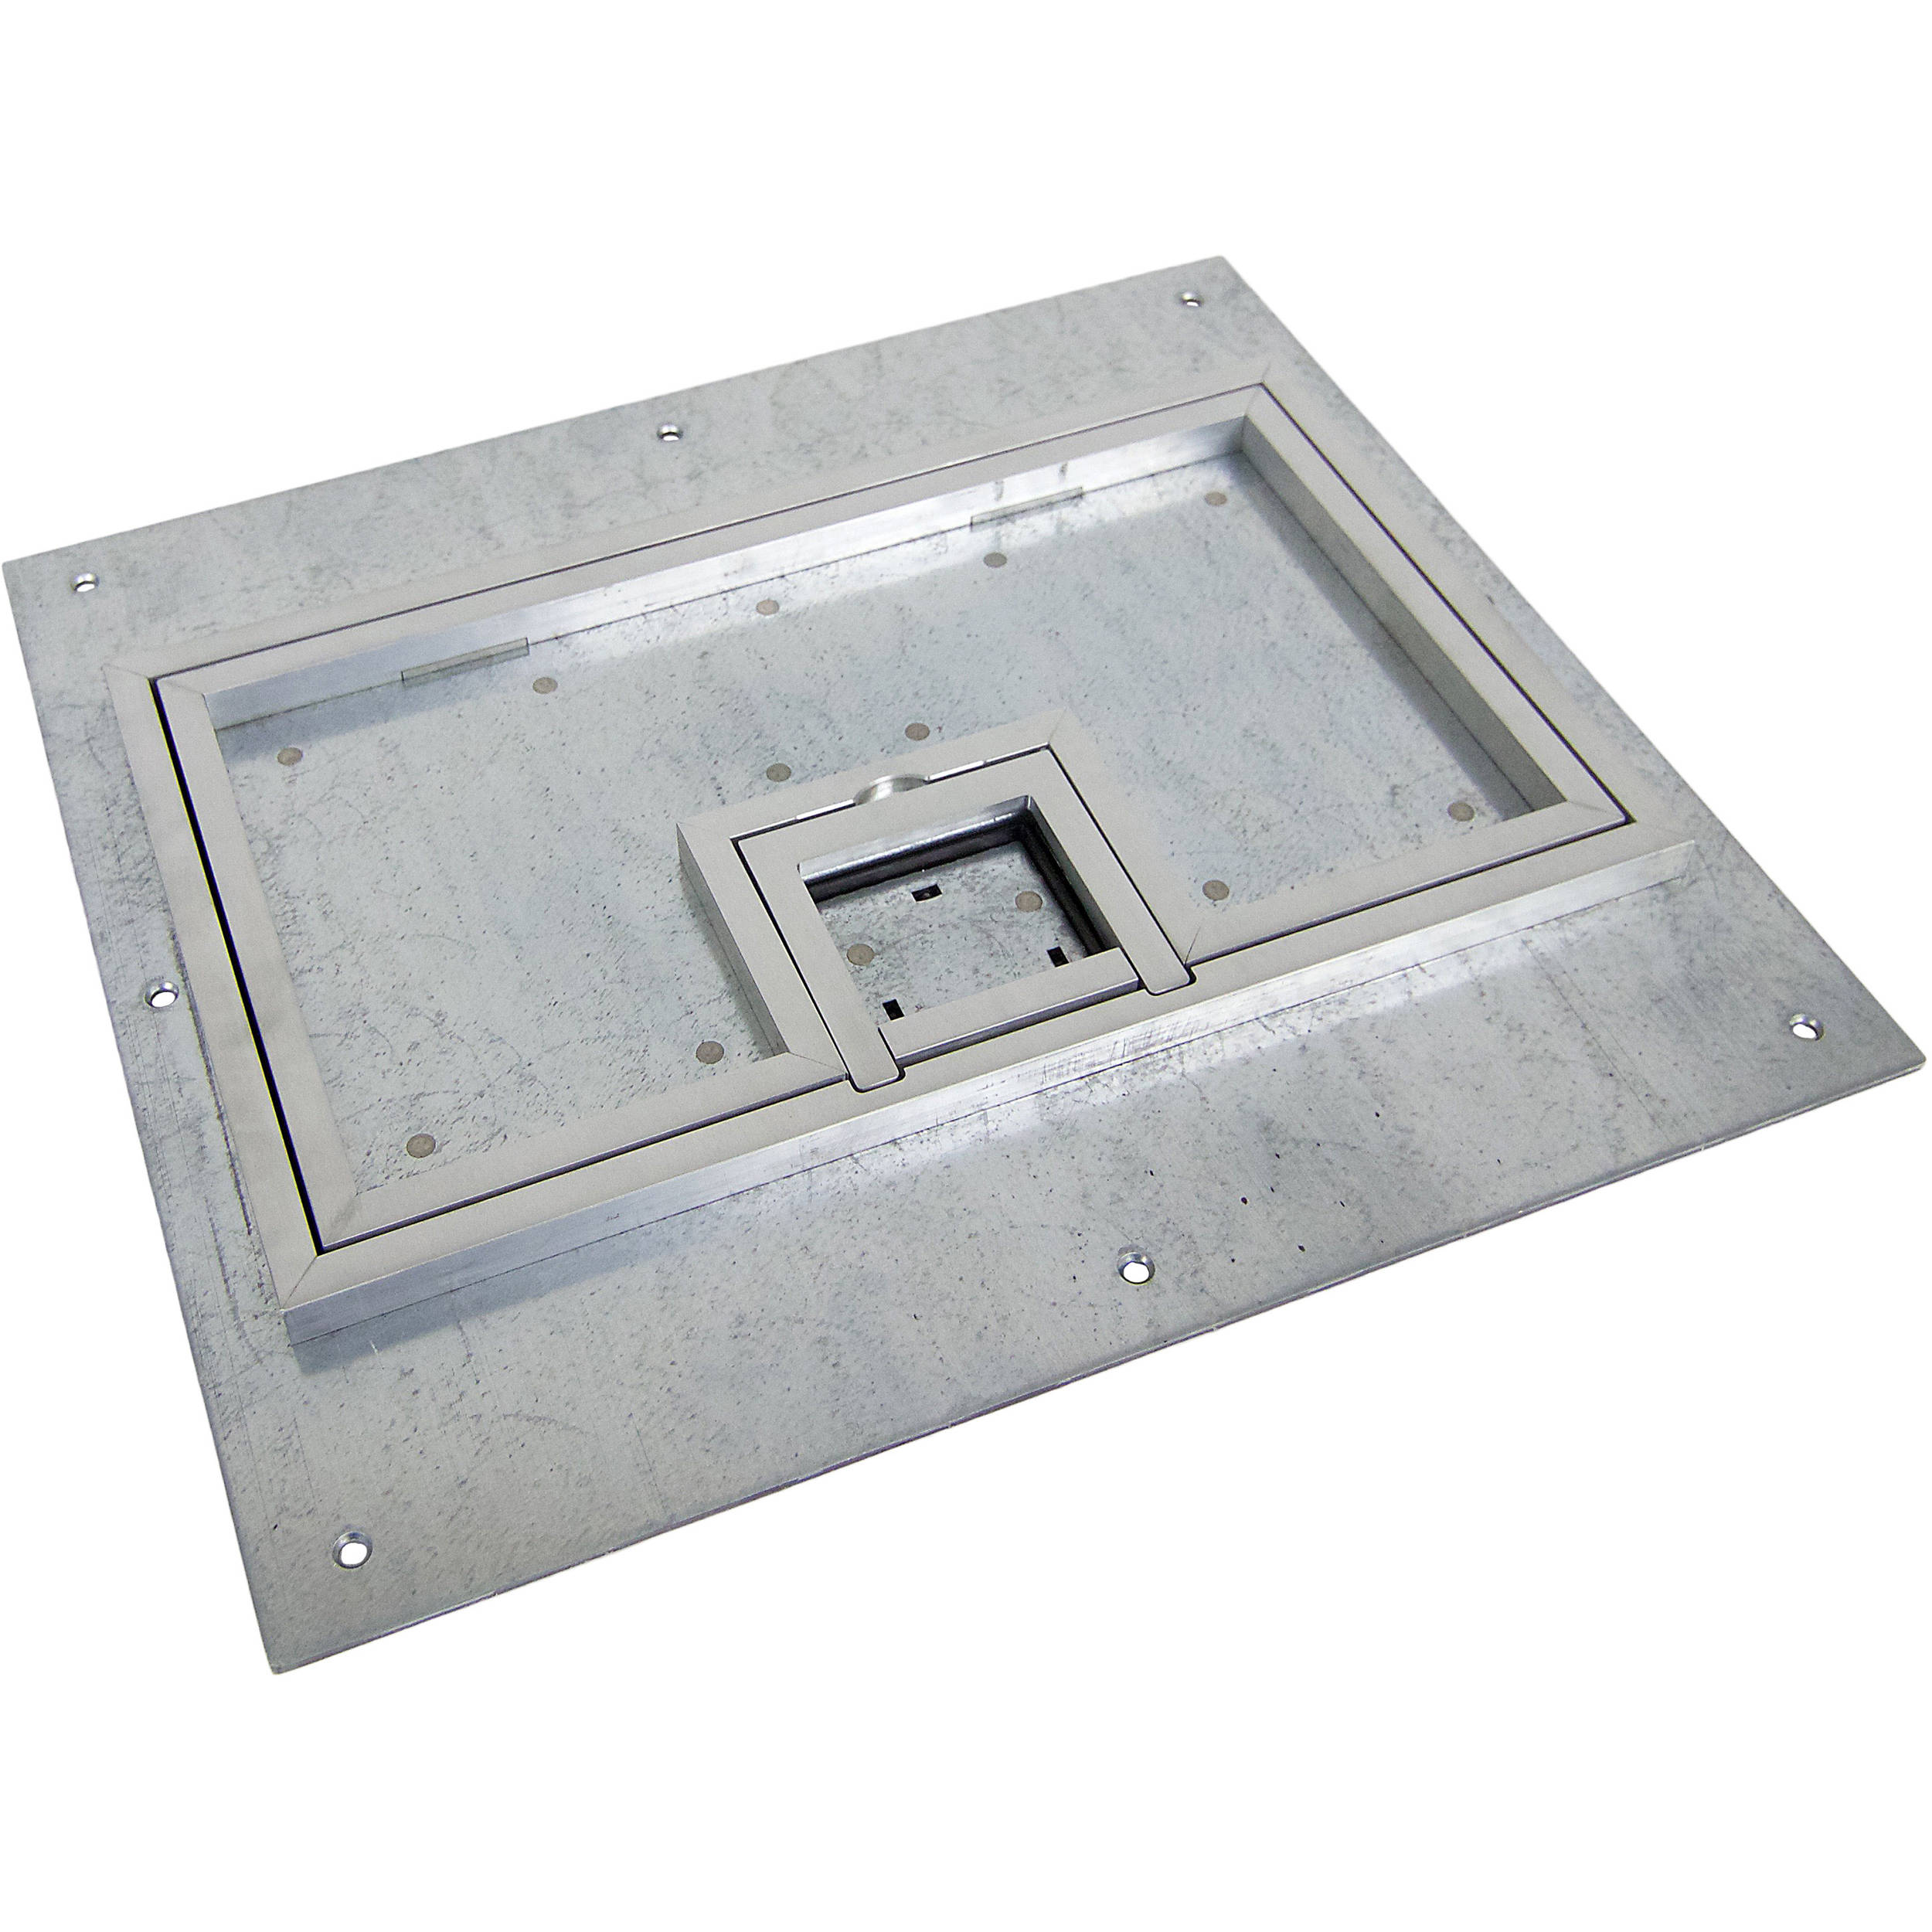 Frk 605 Series Of Fire Rated Floor Boxes likewise Frk 605 Series Of Fire Rated Floor Boxes as well Electrical Cable Sizes together with  additionally Floor Box Fl 600p Series. on fl 600p floor box